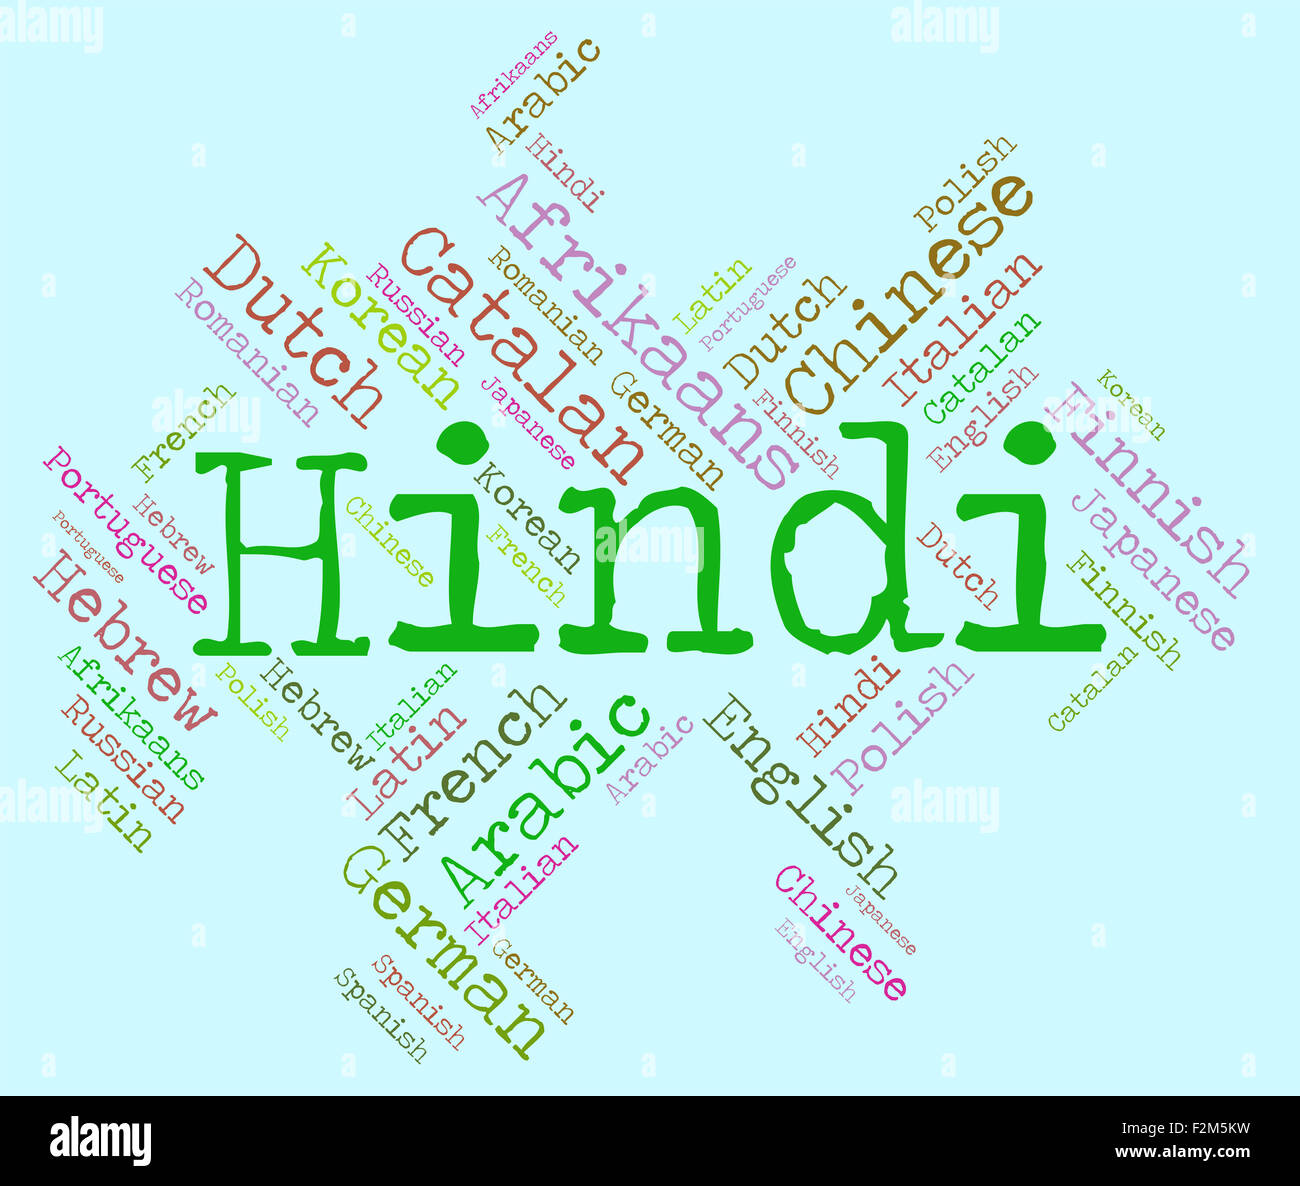 Hindi language meaning languages words and india stock photo hindi language meaning languages words and india ccuart Image collections